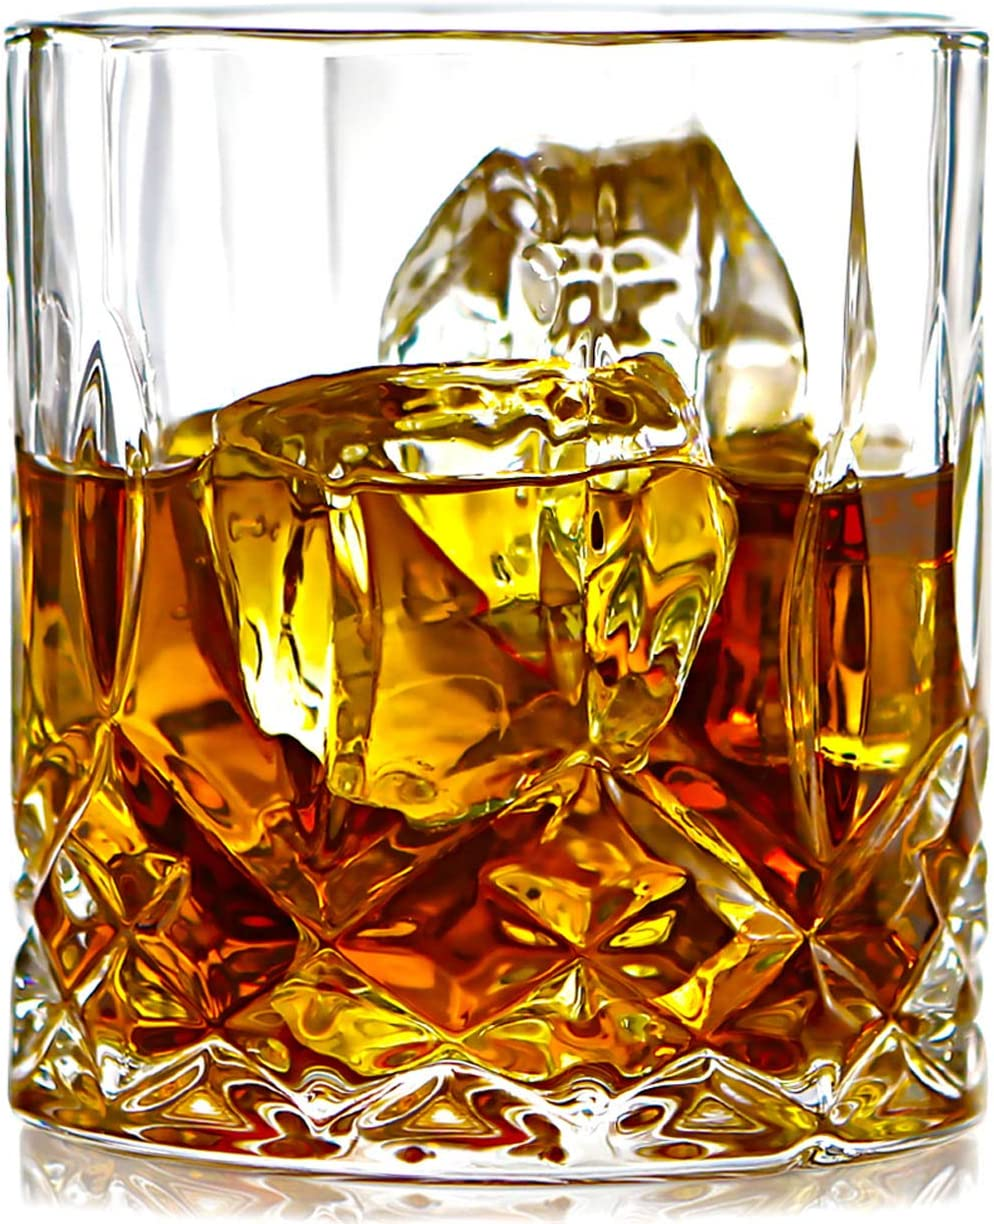 ELIDOMC Lead Free Crystal Whiskey Glasses (Set of 4), 11 Oz Unique Bourbon Glass, Ultra-Clarity Double Old Fashioned Glasses